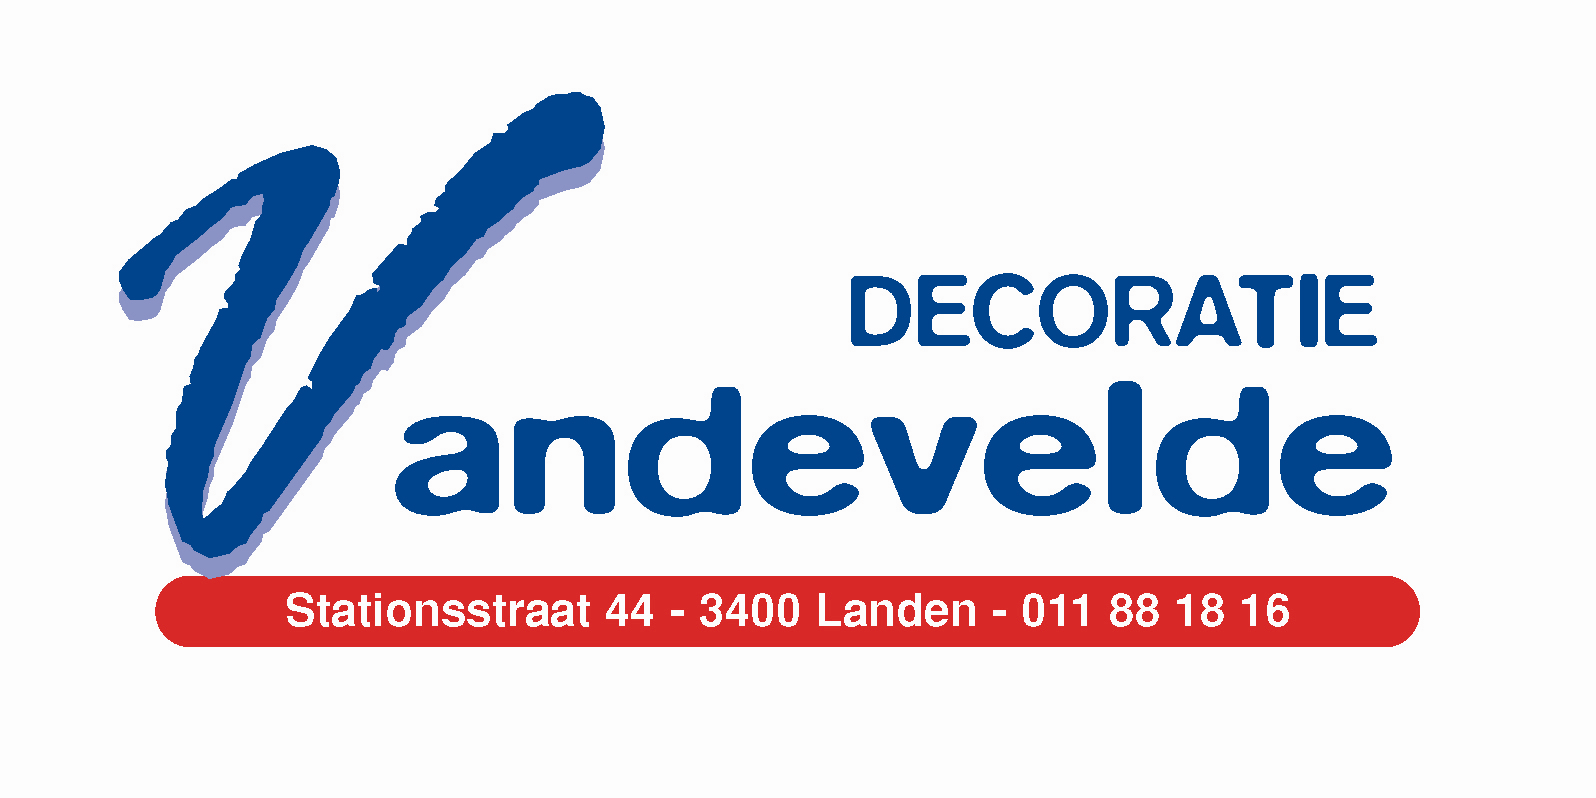 Decoratie Vandevelde